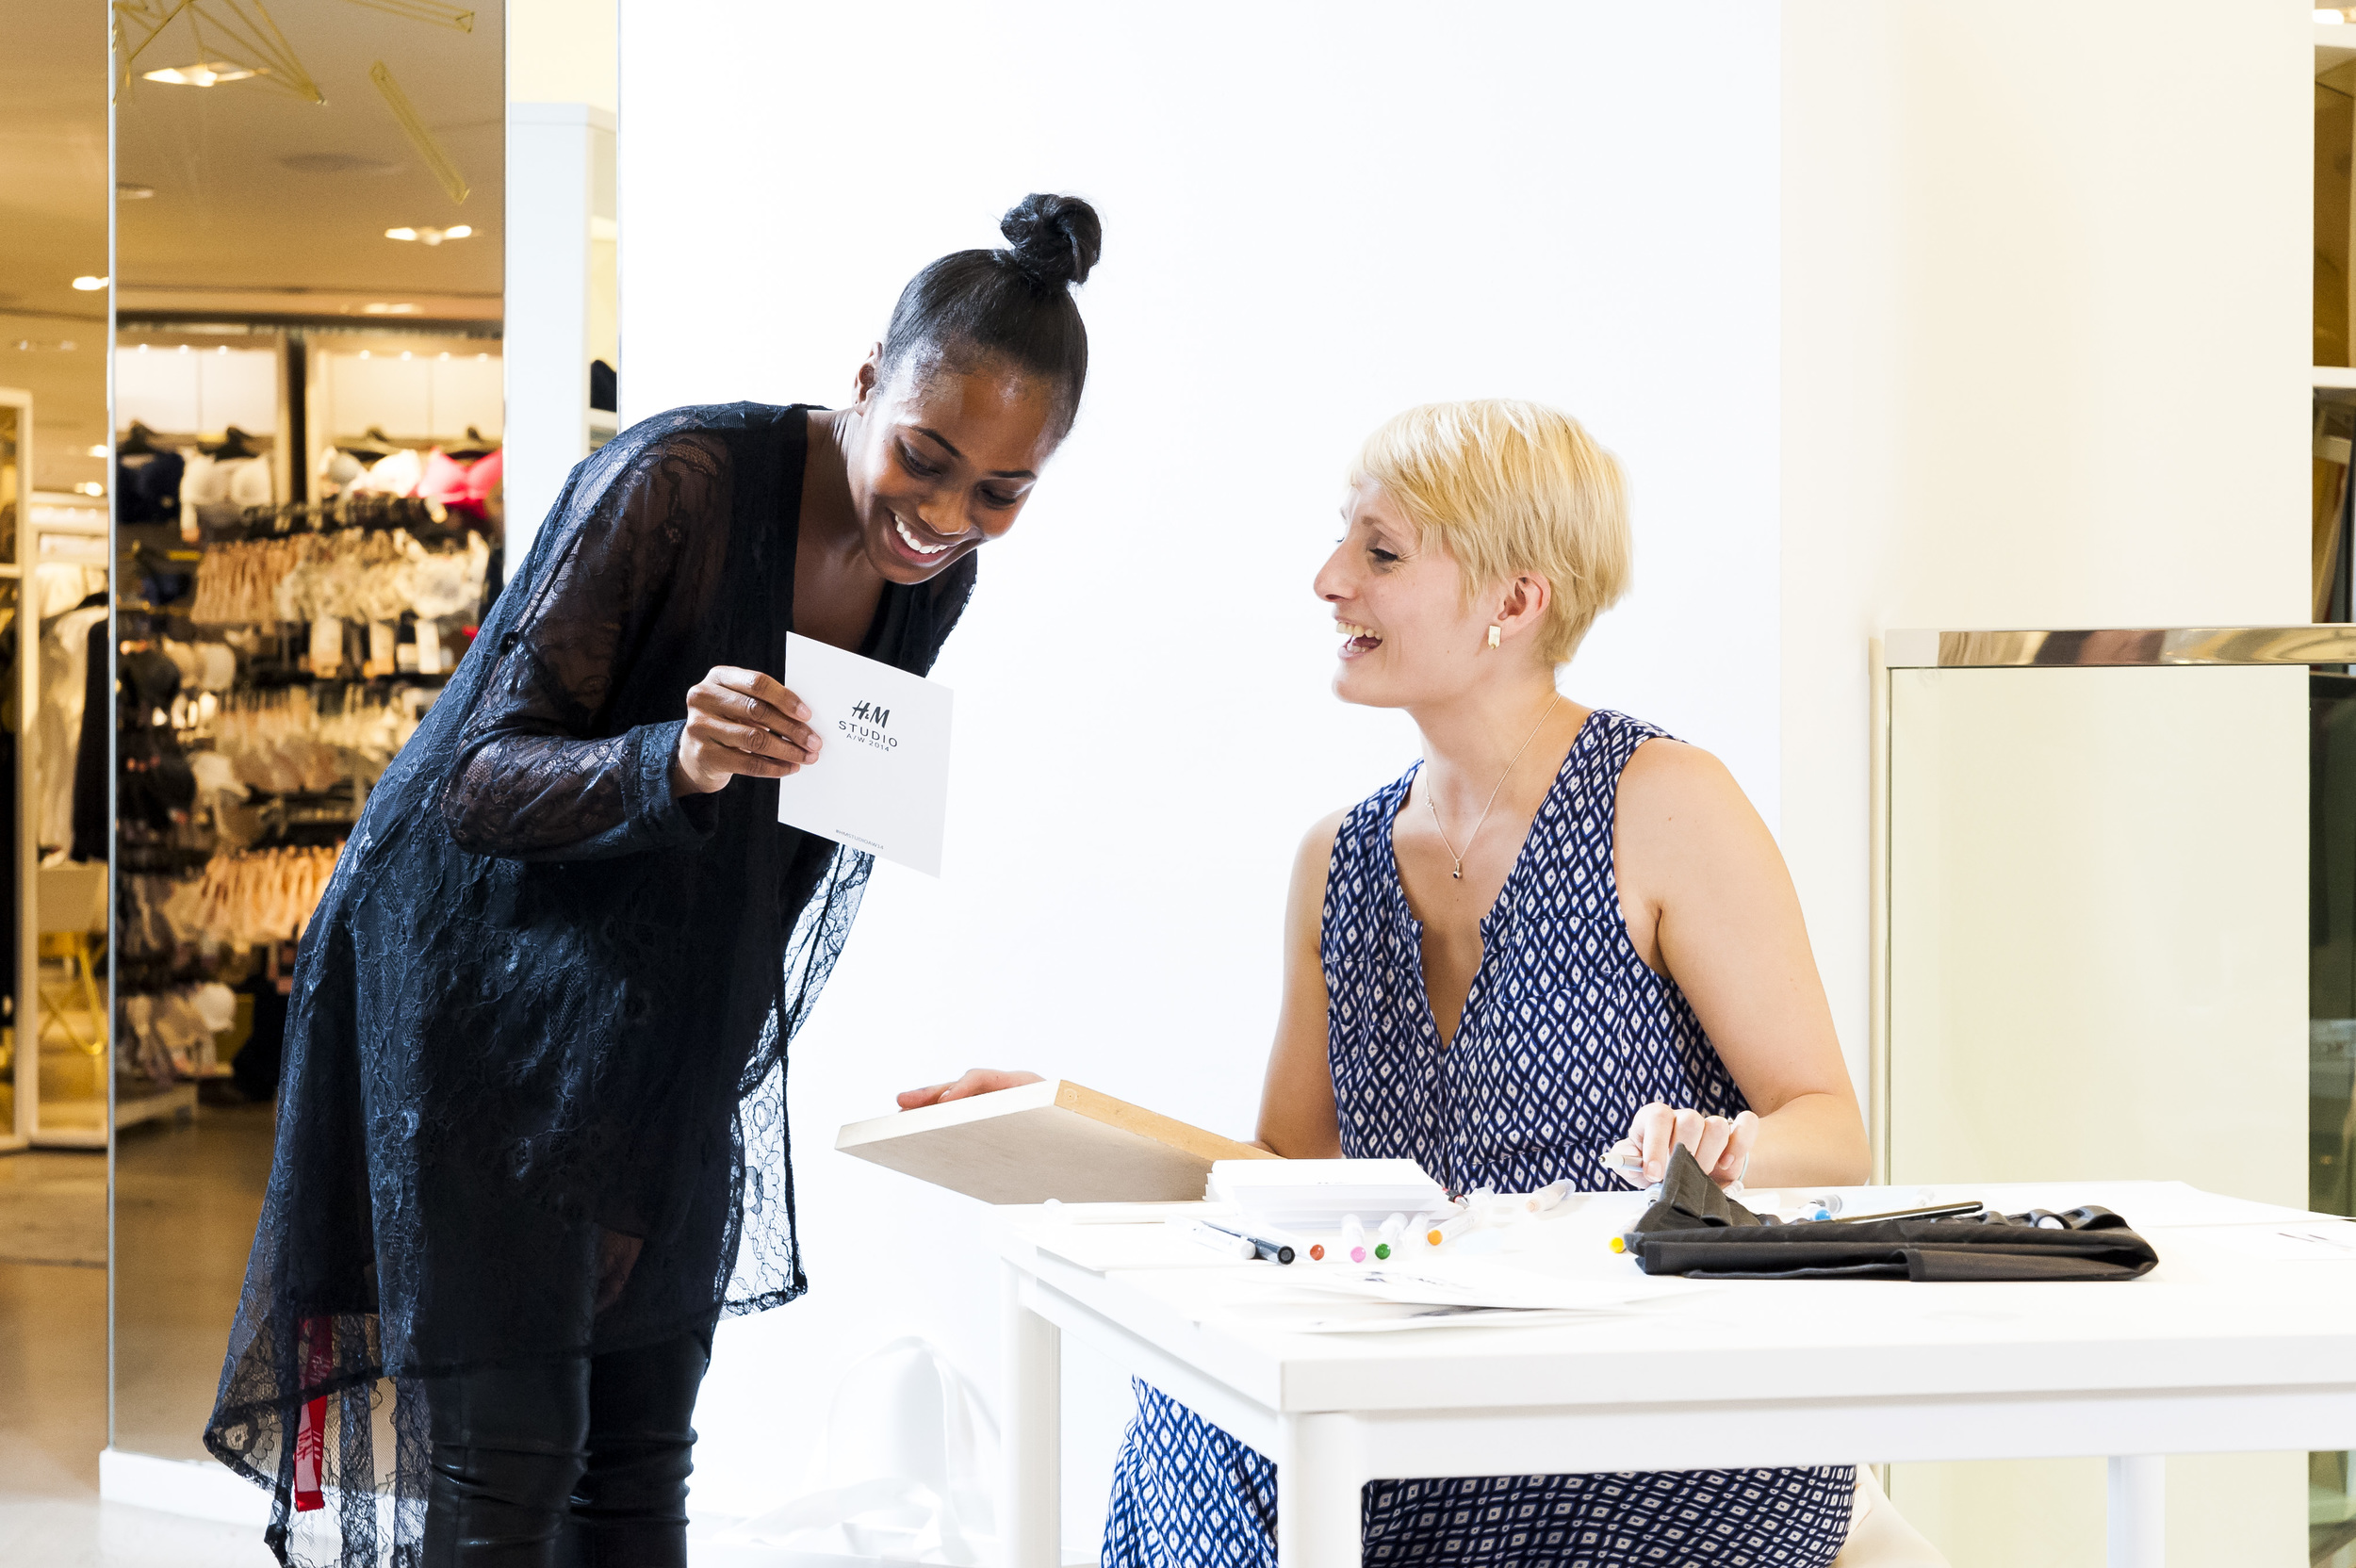 Willa Gebbie live fashion illustration at H&M, Oxford Street, London with LiL colective